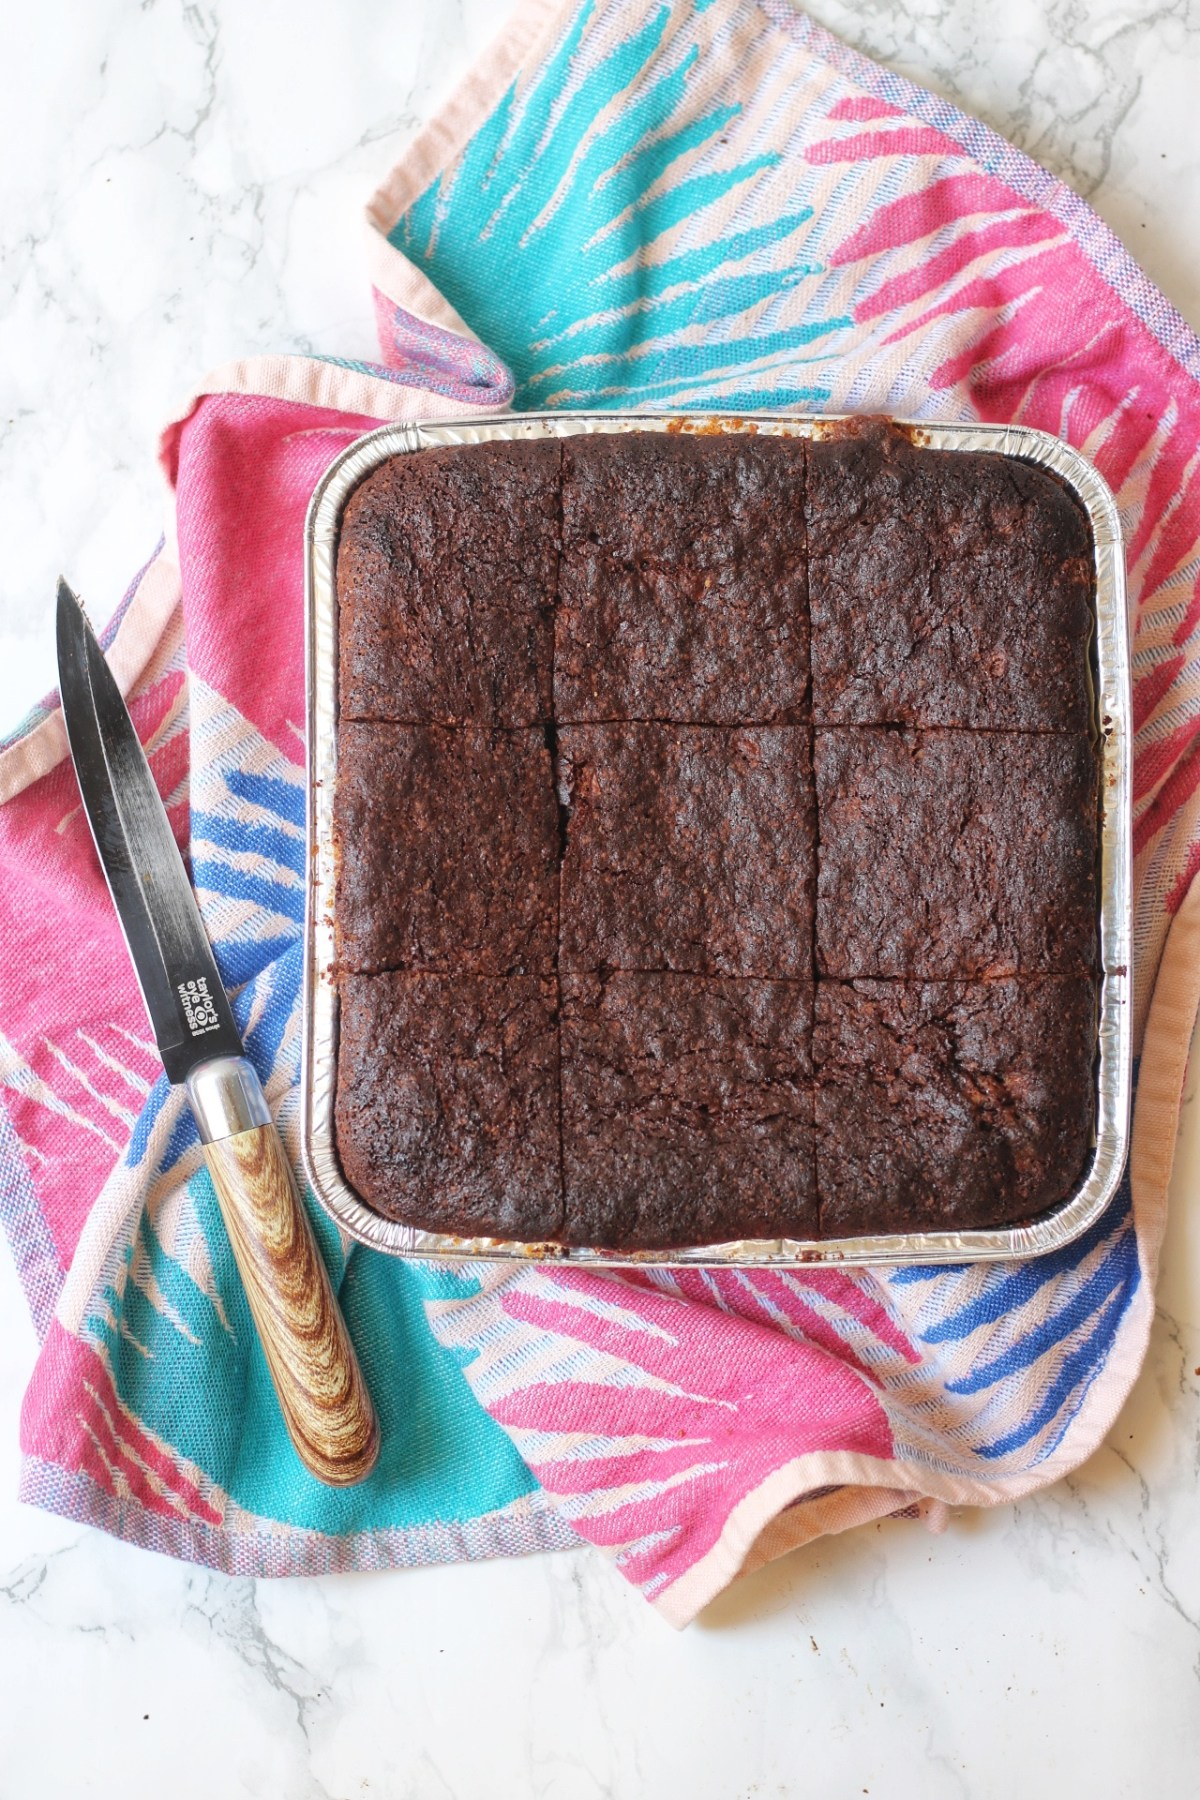 A tray of vegan brownies with a knife